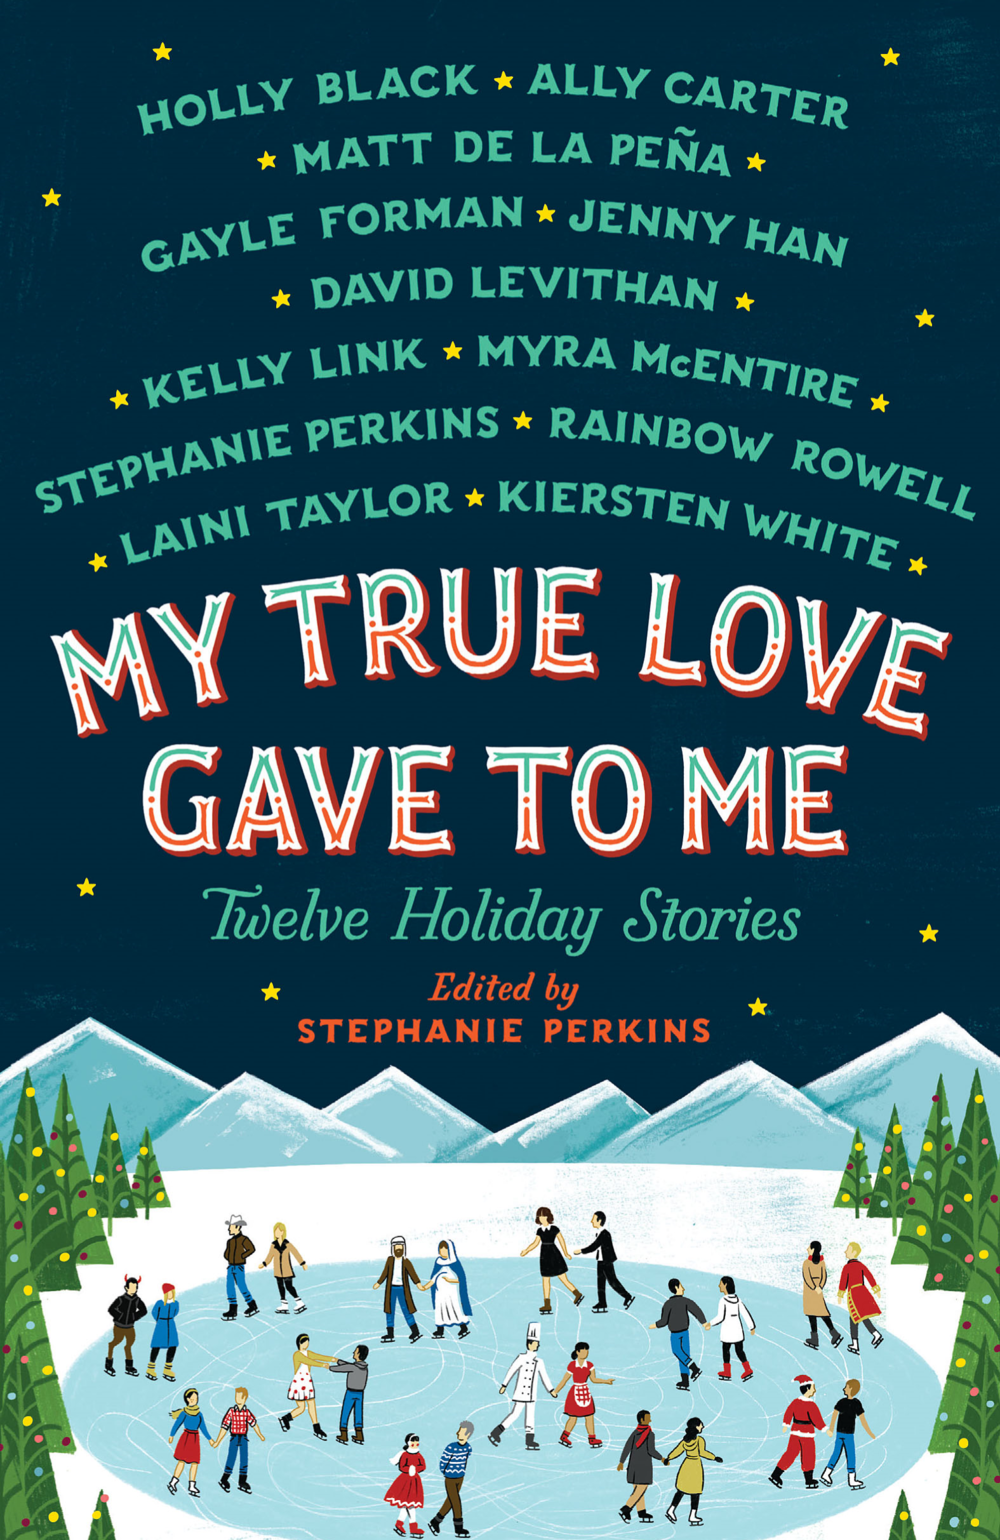 My-True-Love-Gave-to-Me edited by stephanie perkins.jpg